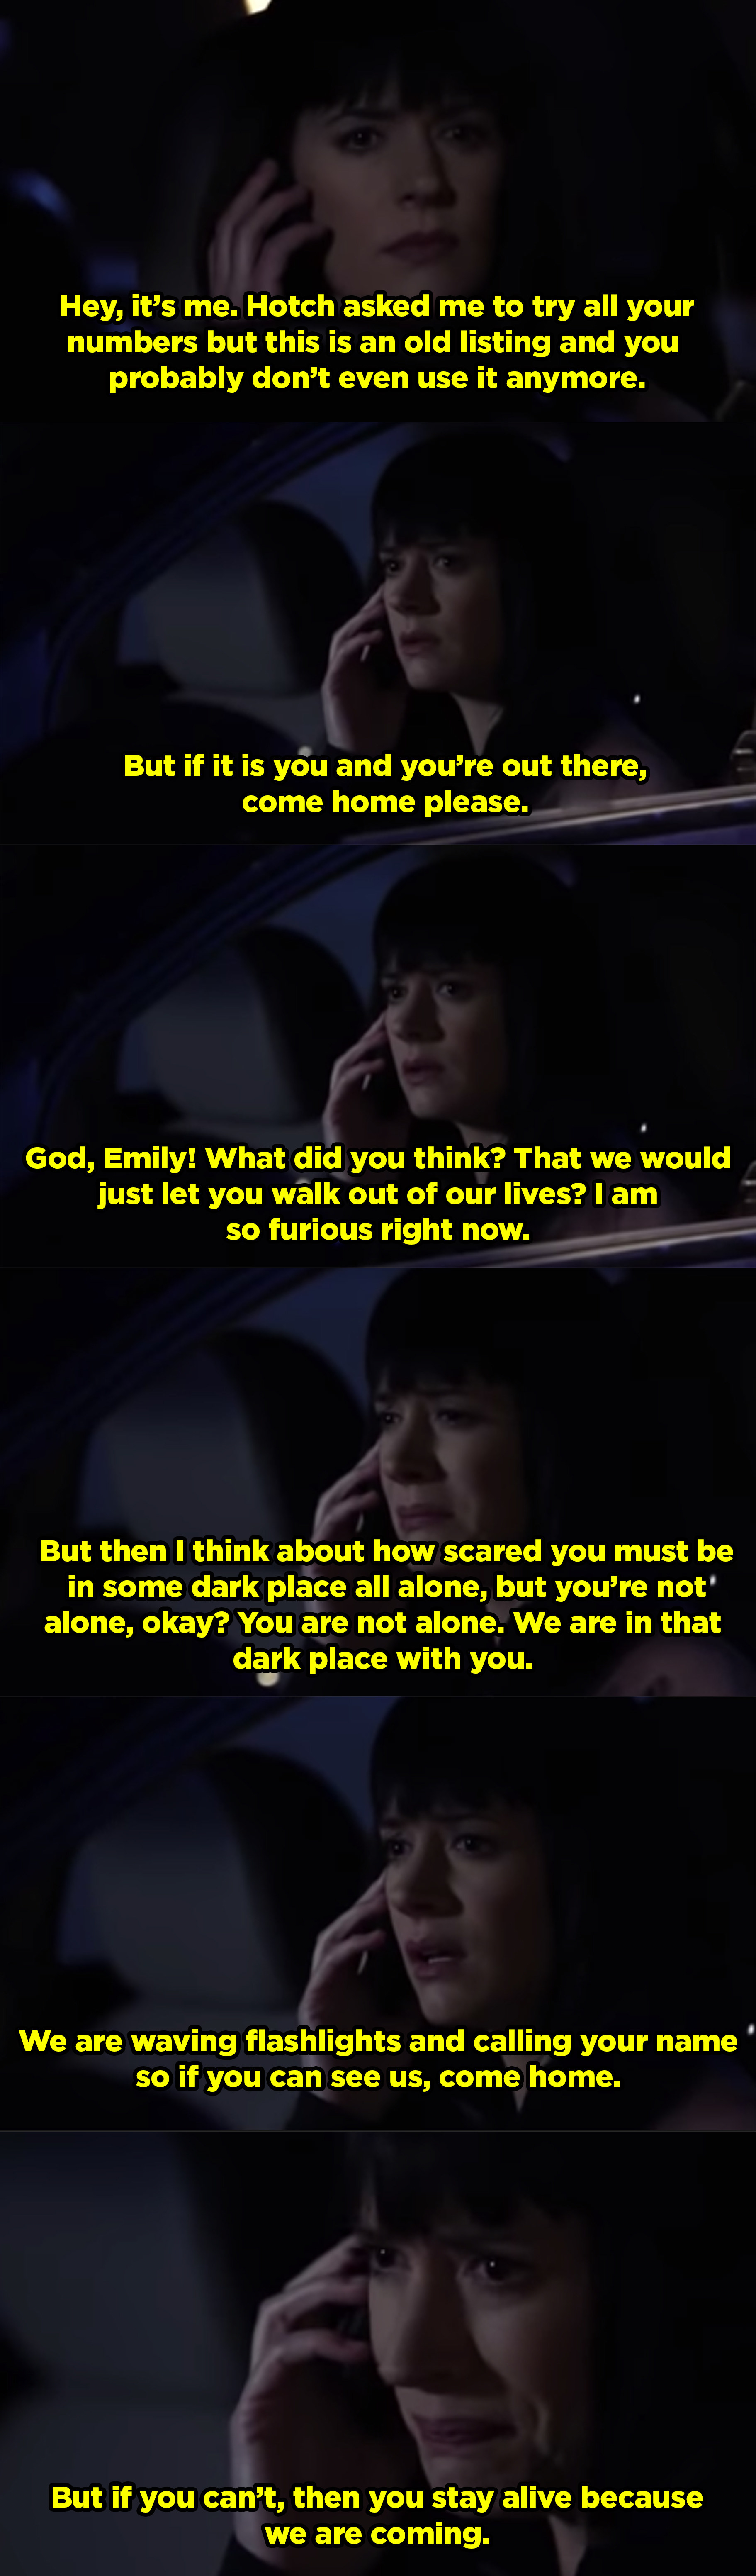 Garcia begging Emily to stay safe and come back home over a voicemail.